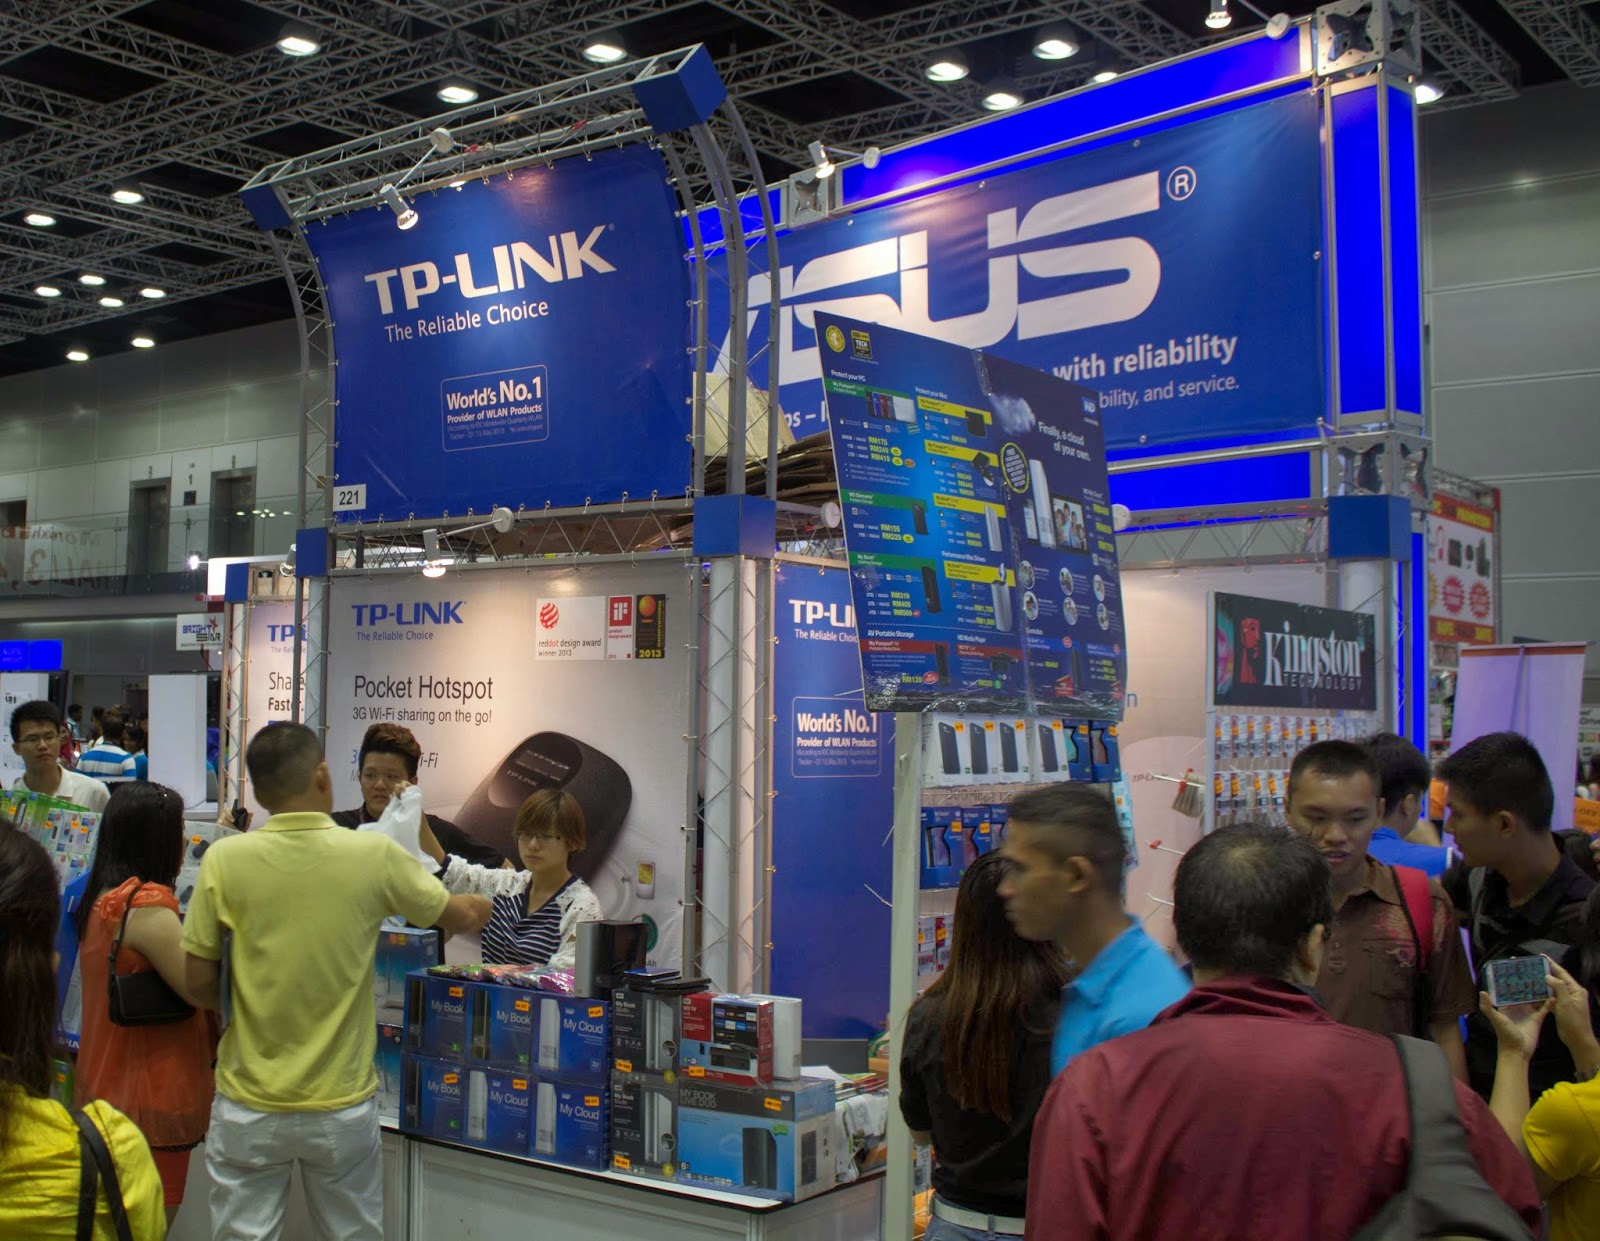 Coverage of PIKOM PC Fair 2014 @ Kuala Lumpur Convention Center 331